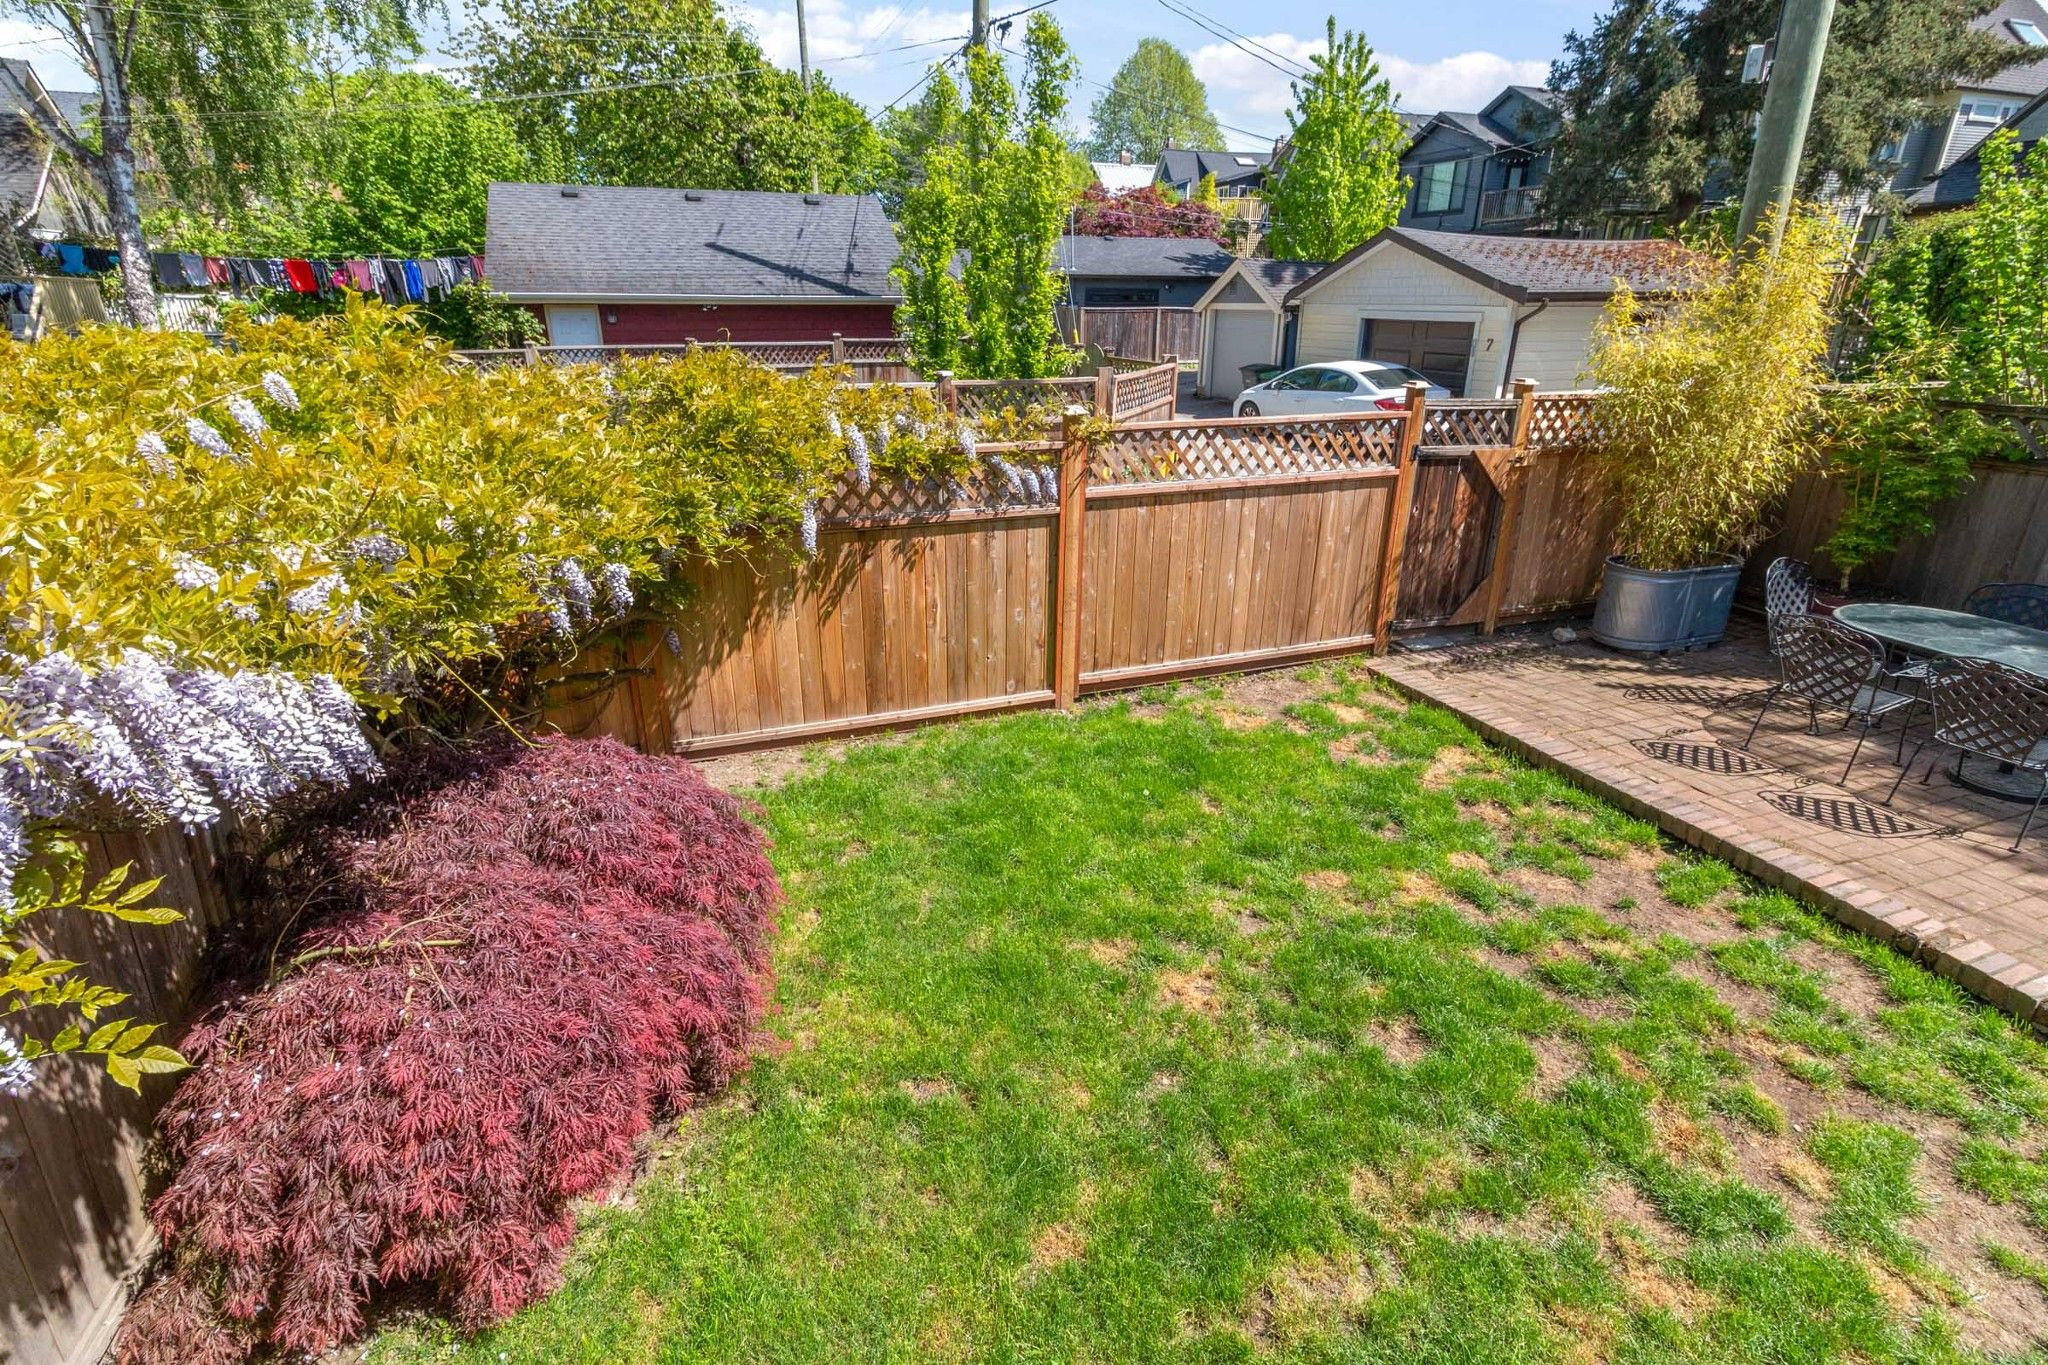 Photo 23: Photos: 3742 ONTARIO Street in Vancouver: Main House for sale (Vancouver East)  : MLS®# R2580004